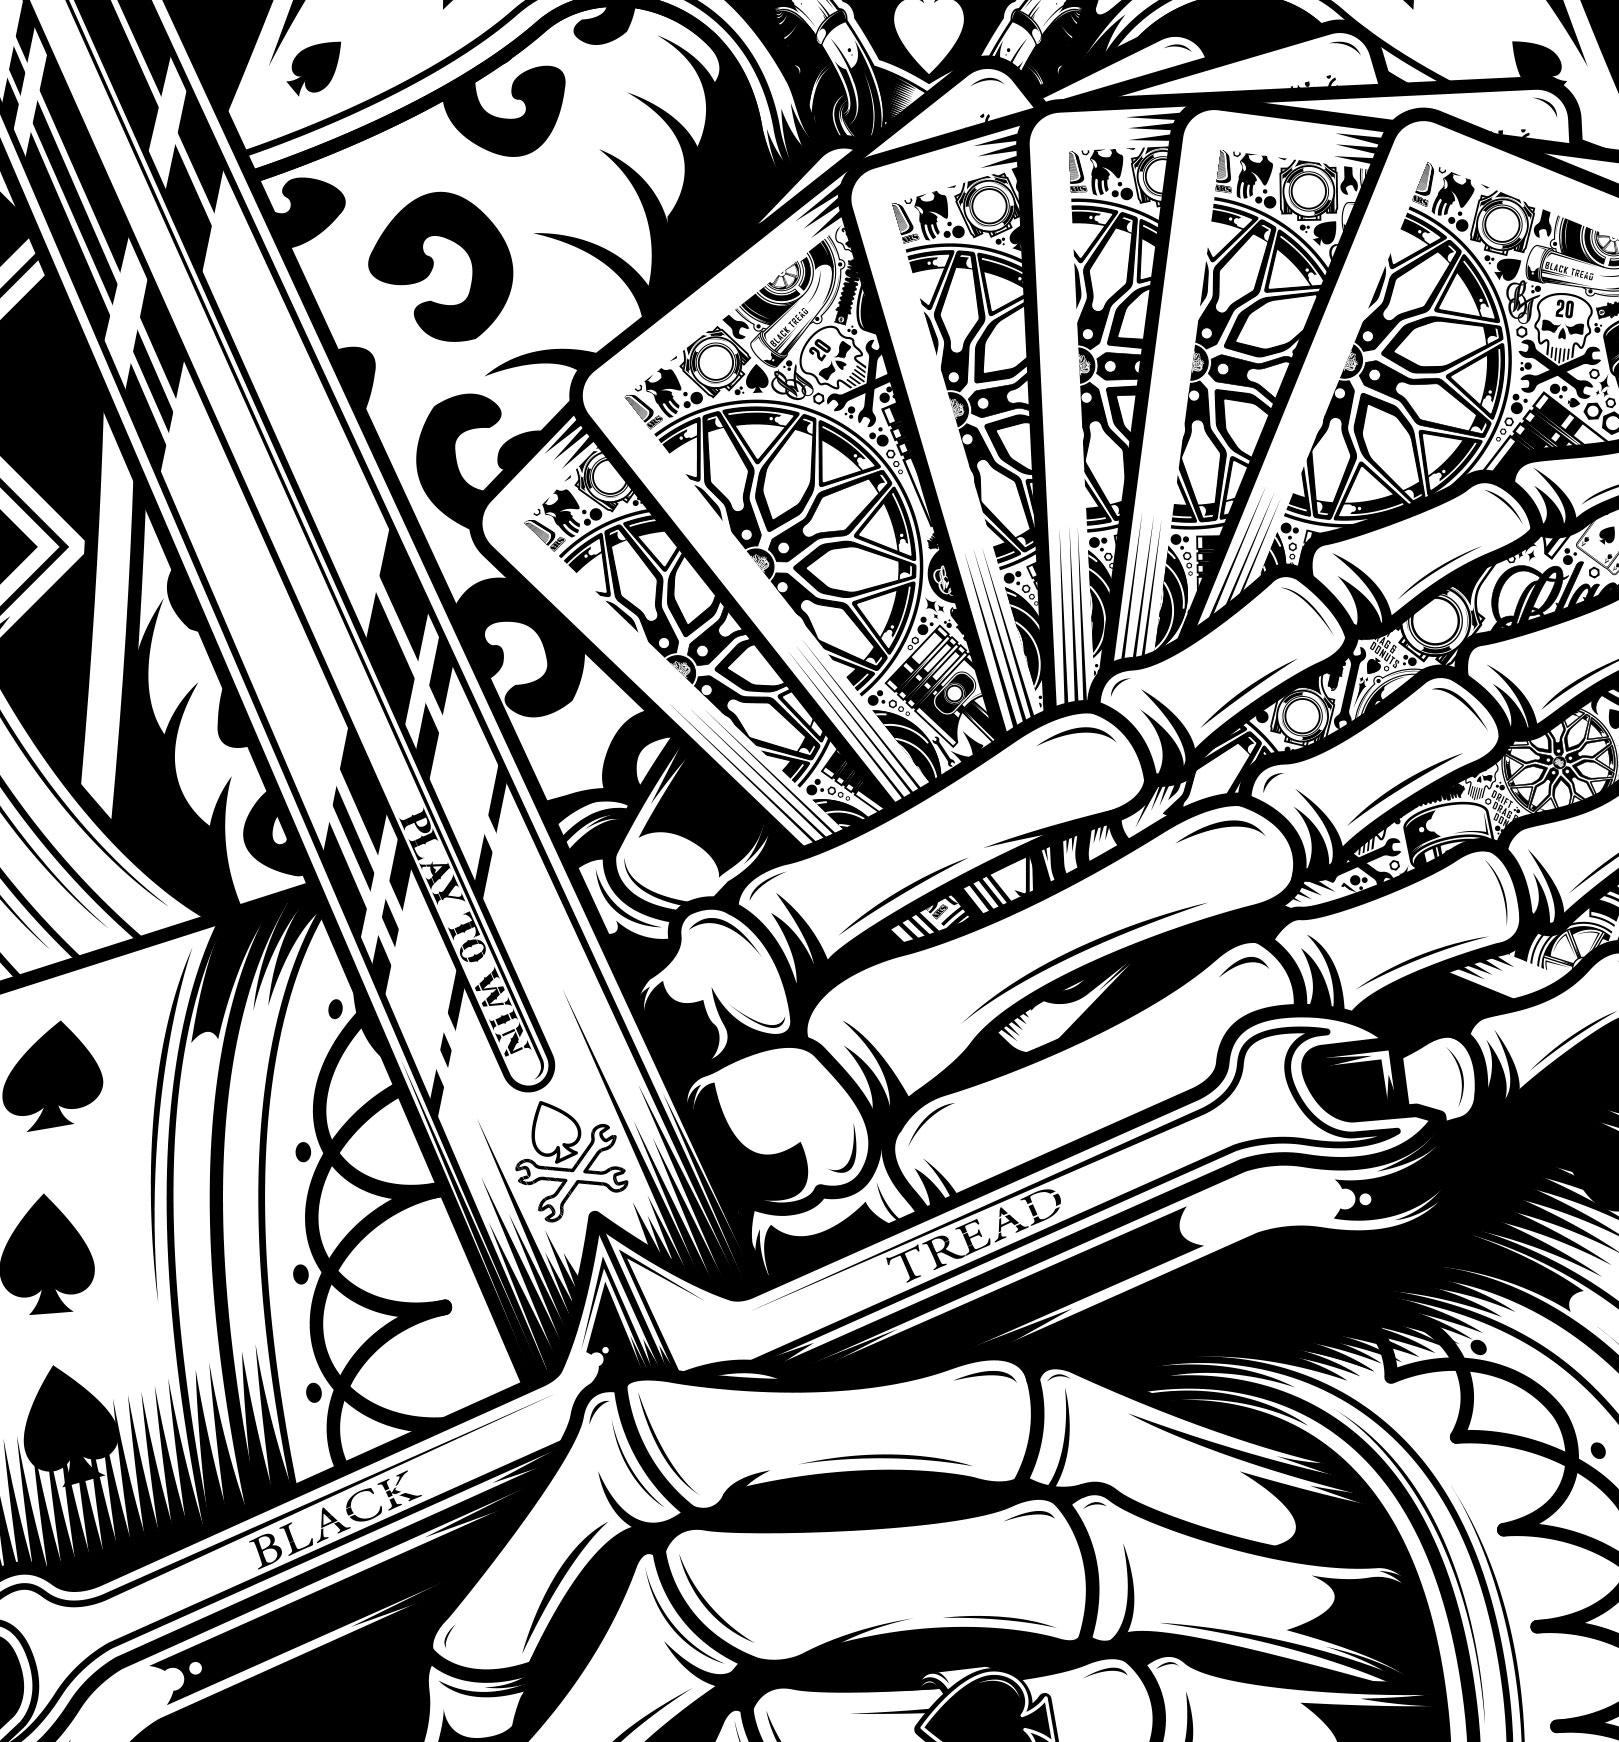 black-tread-king-of-spades-playing-card-play-to-win-04